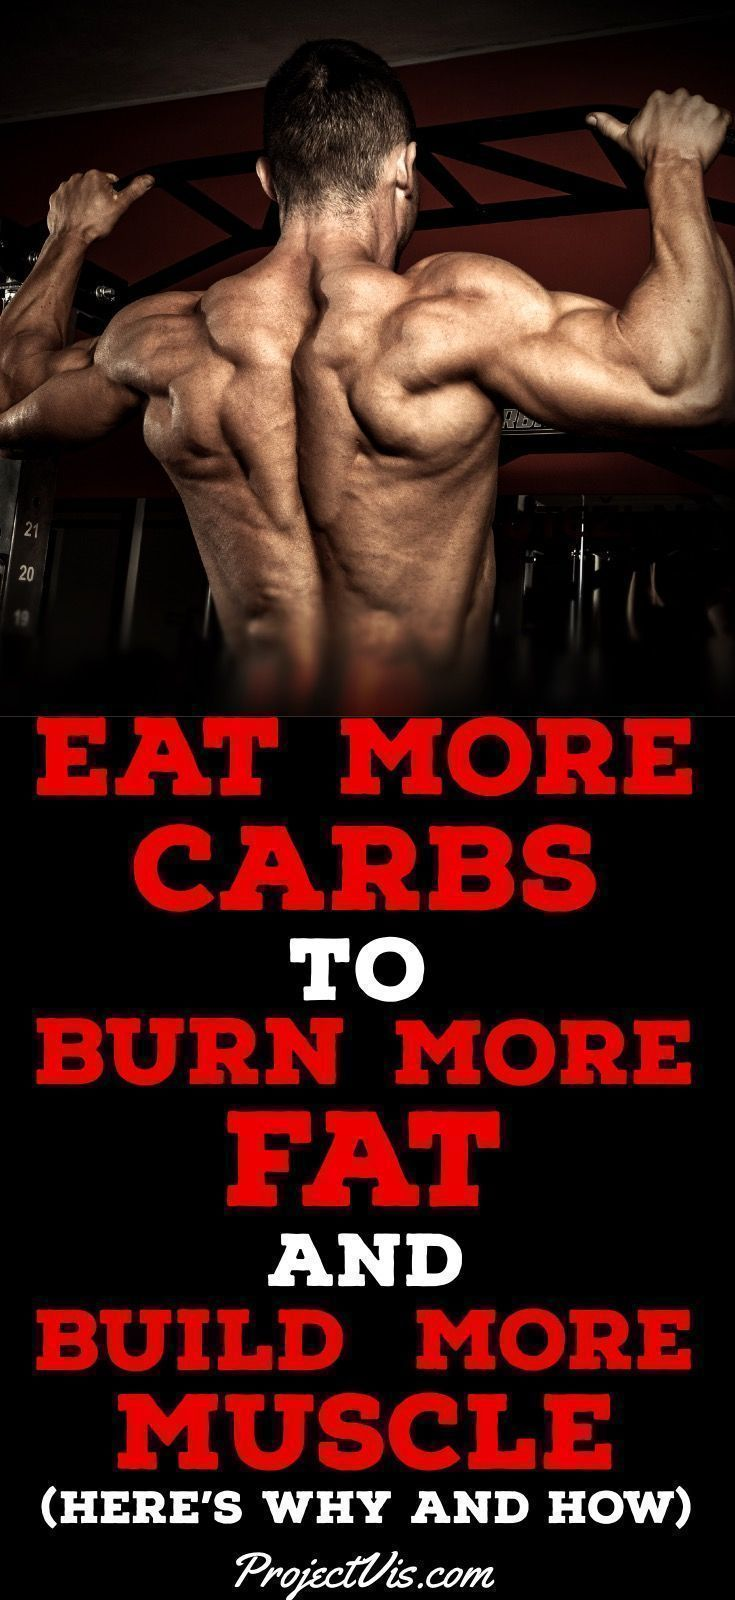 Build Muscle and Burn More Fat with This Tabata Workout for Beginners Build Muscle and Burn More Fat with This Tabata Workout for Beginners new foto